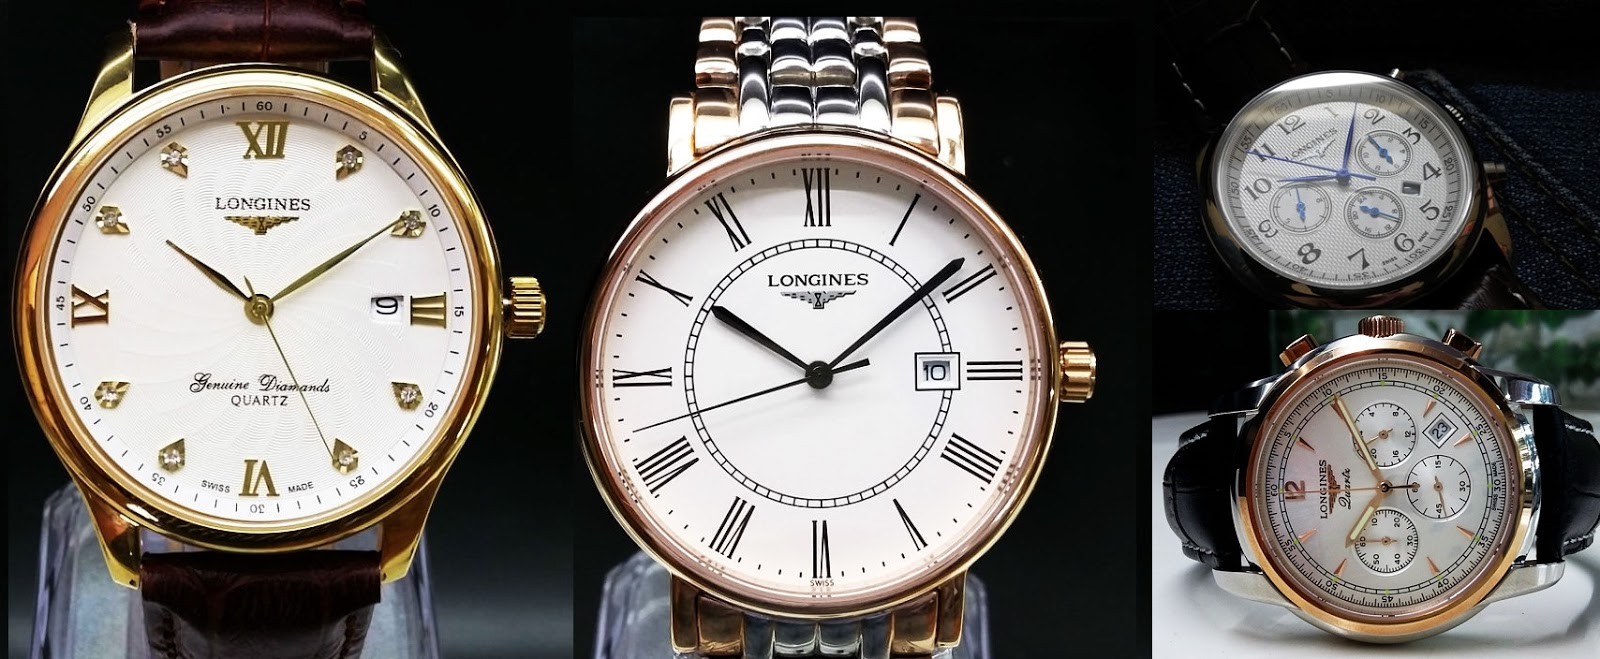 dong ho longines gia